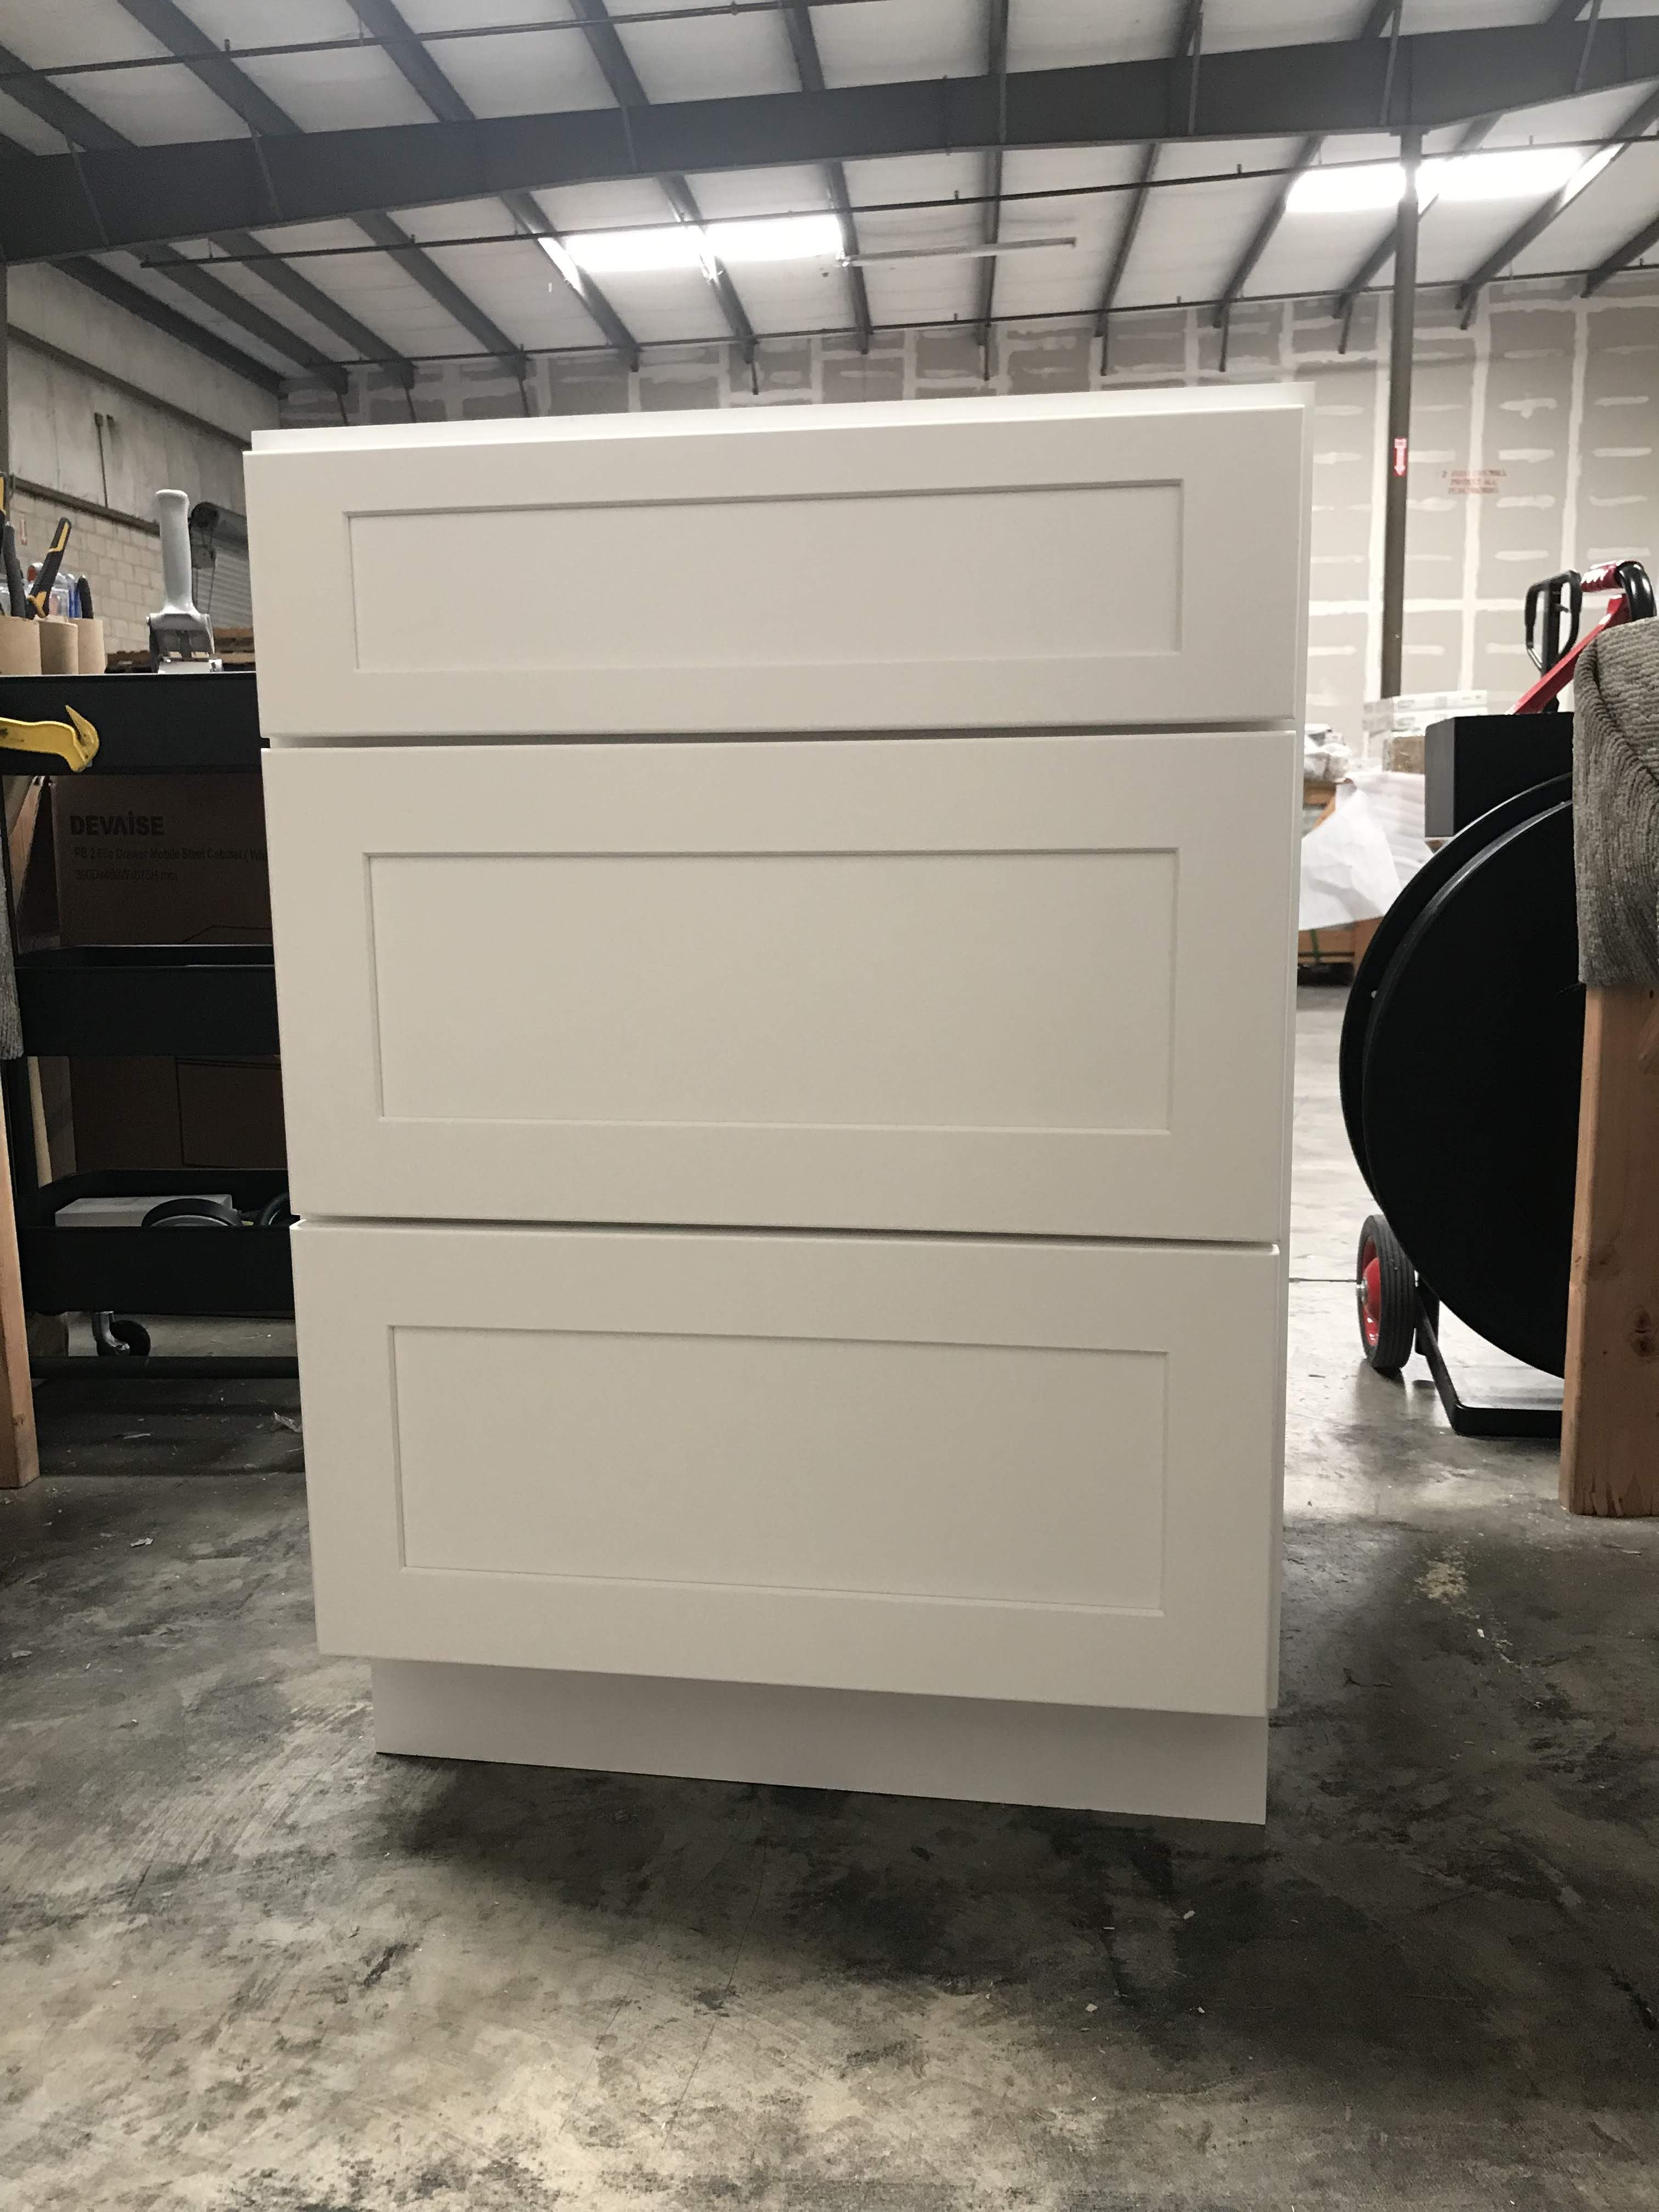 Our Cabinets - Sunshine Wholesale Kitchen Cabinets